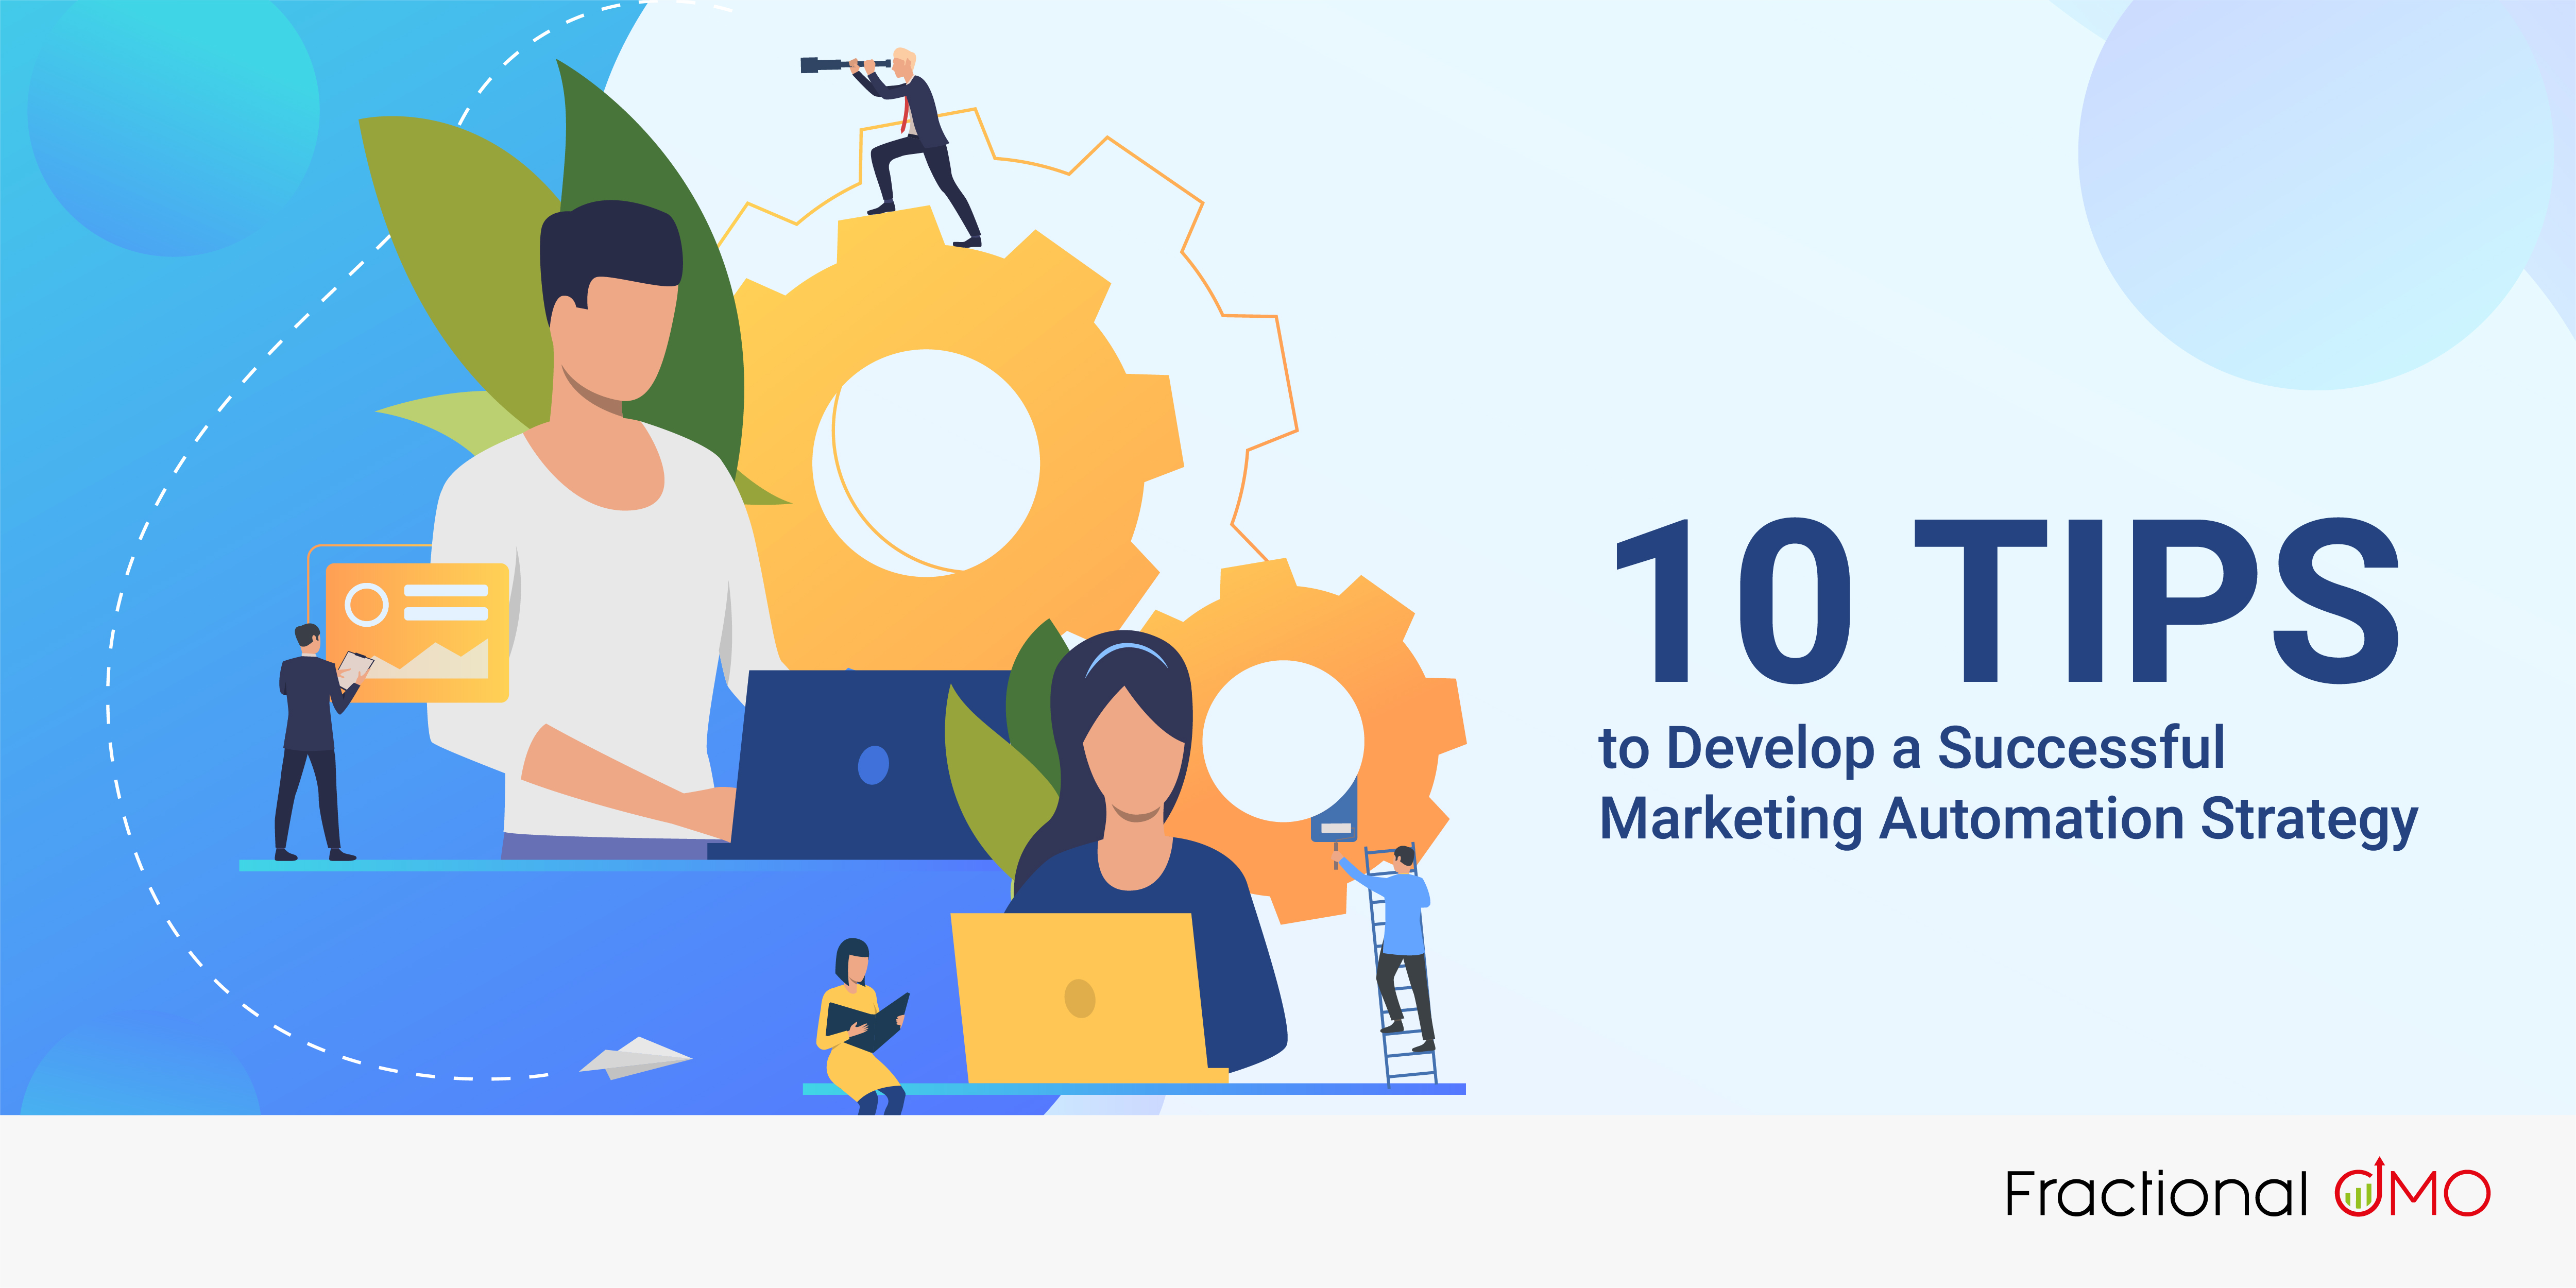 10 Tips to Develop a Successful Marketing Automation Strategy